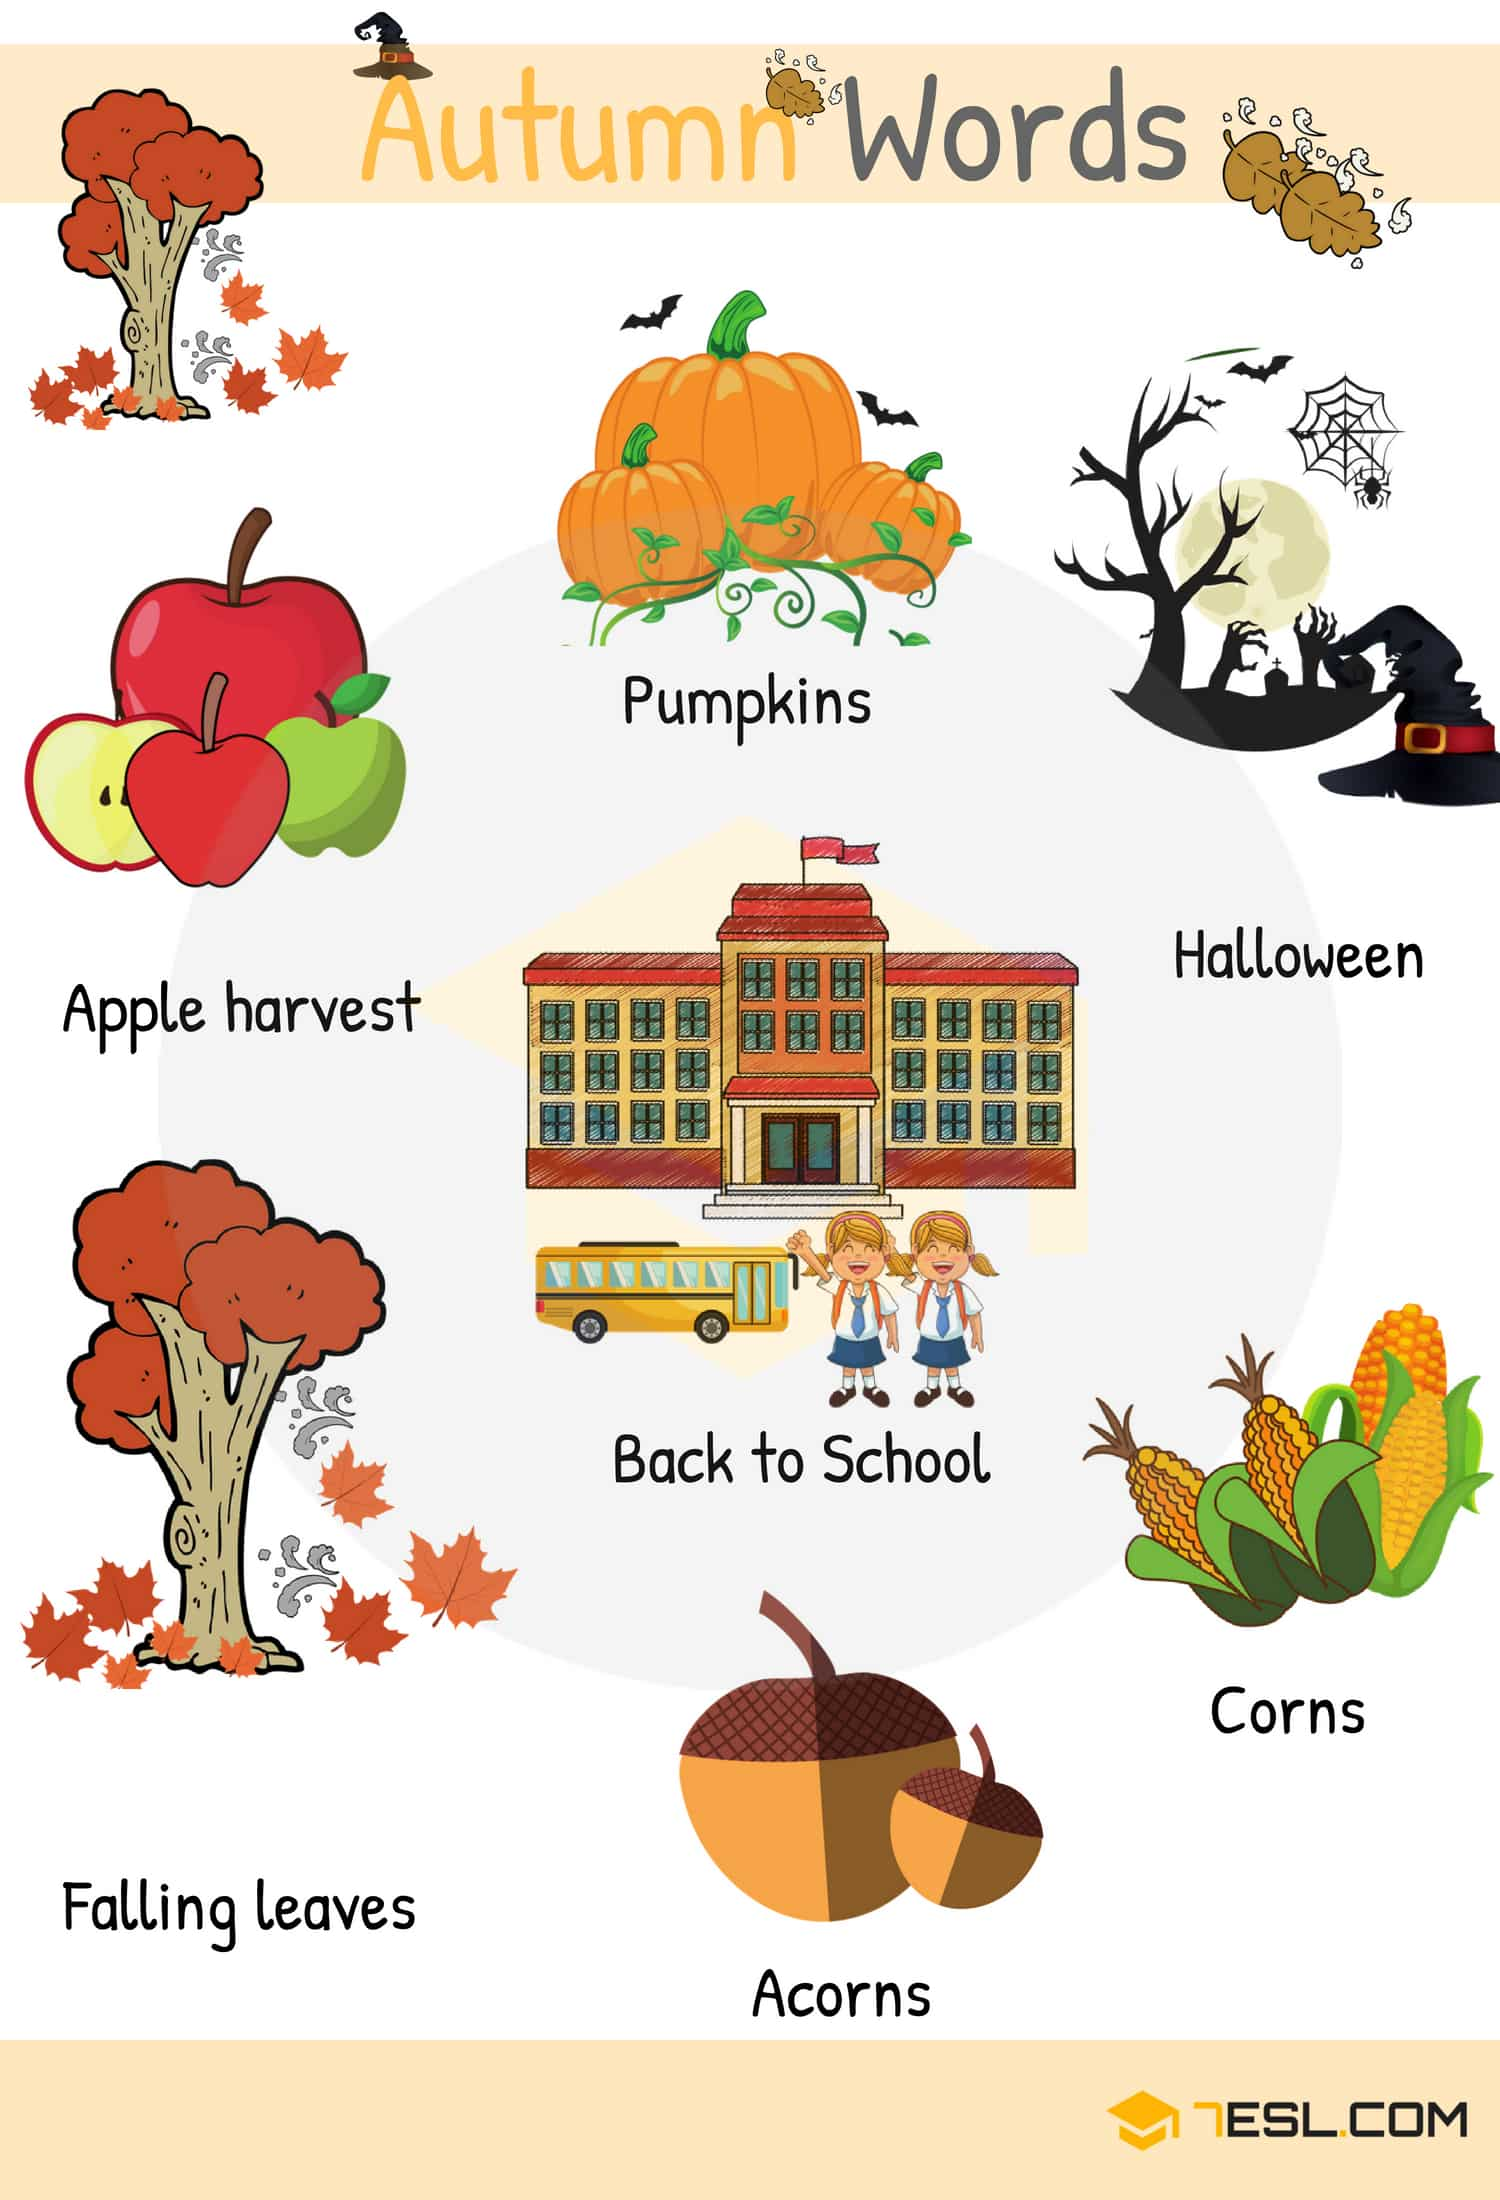 Autumn Words in English | Autumn Vocabulary with Pictures